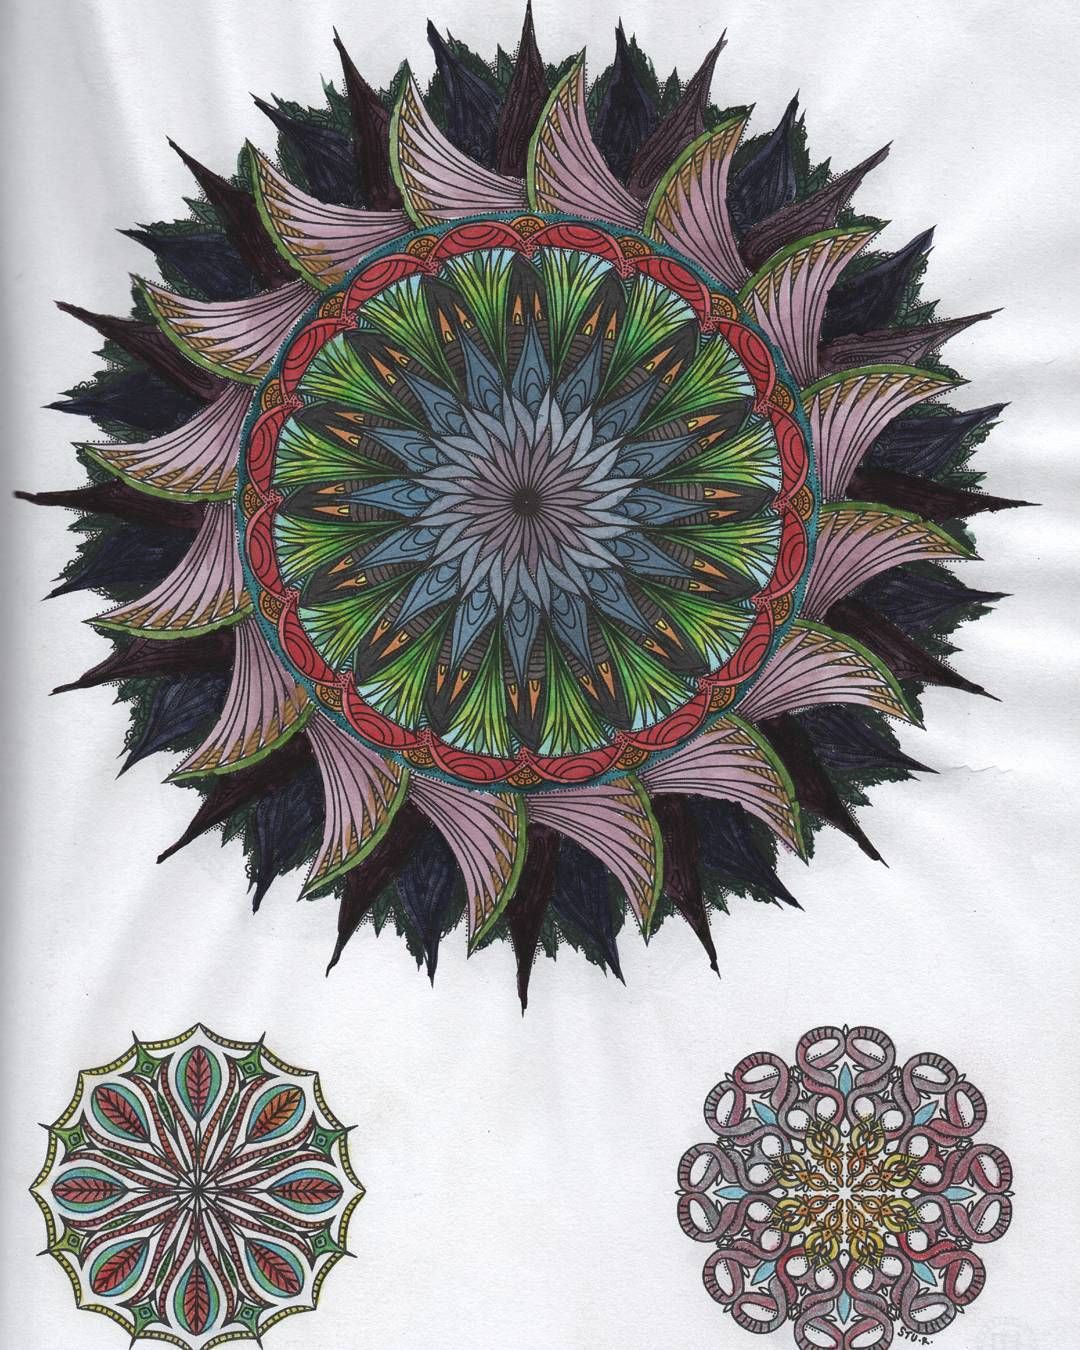 This is page 17, mandala 14 from